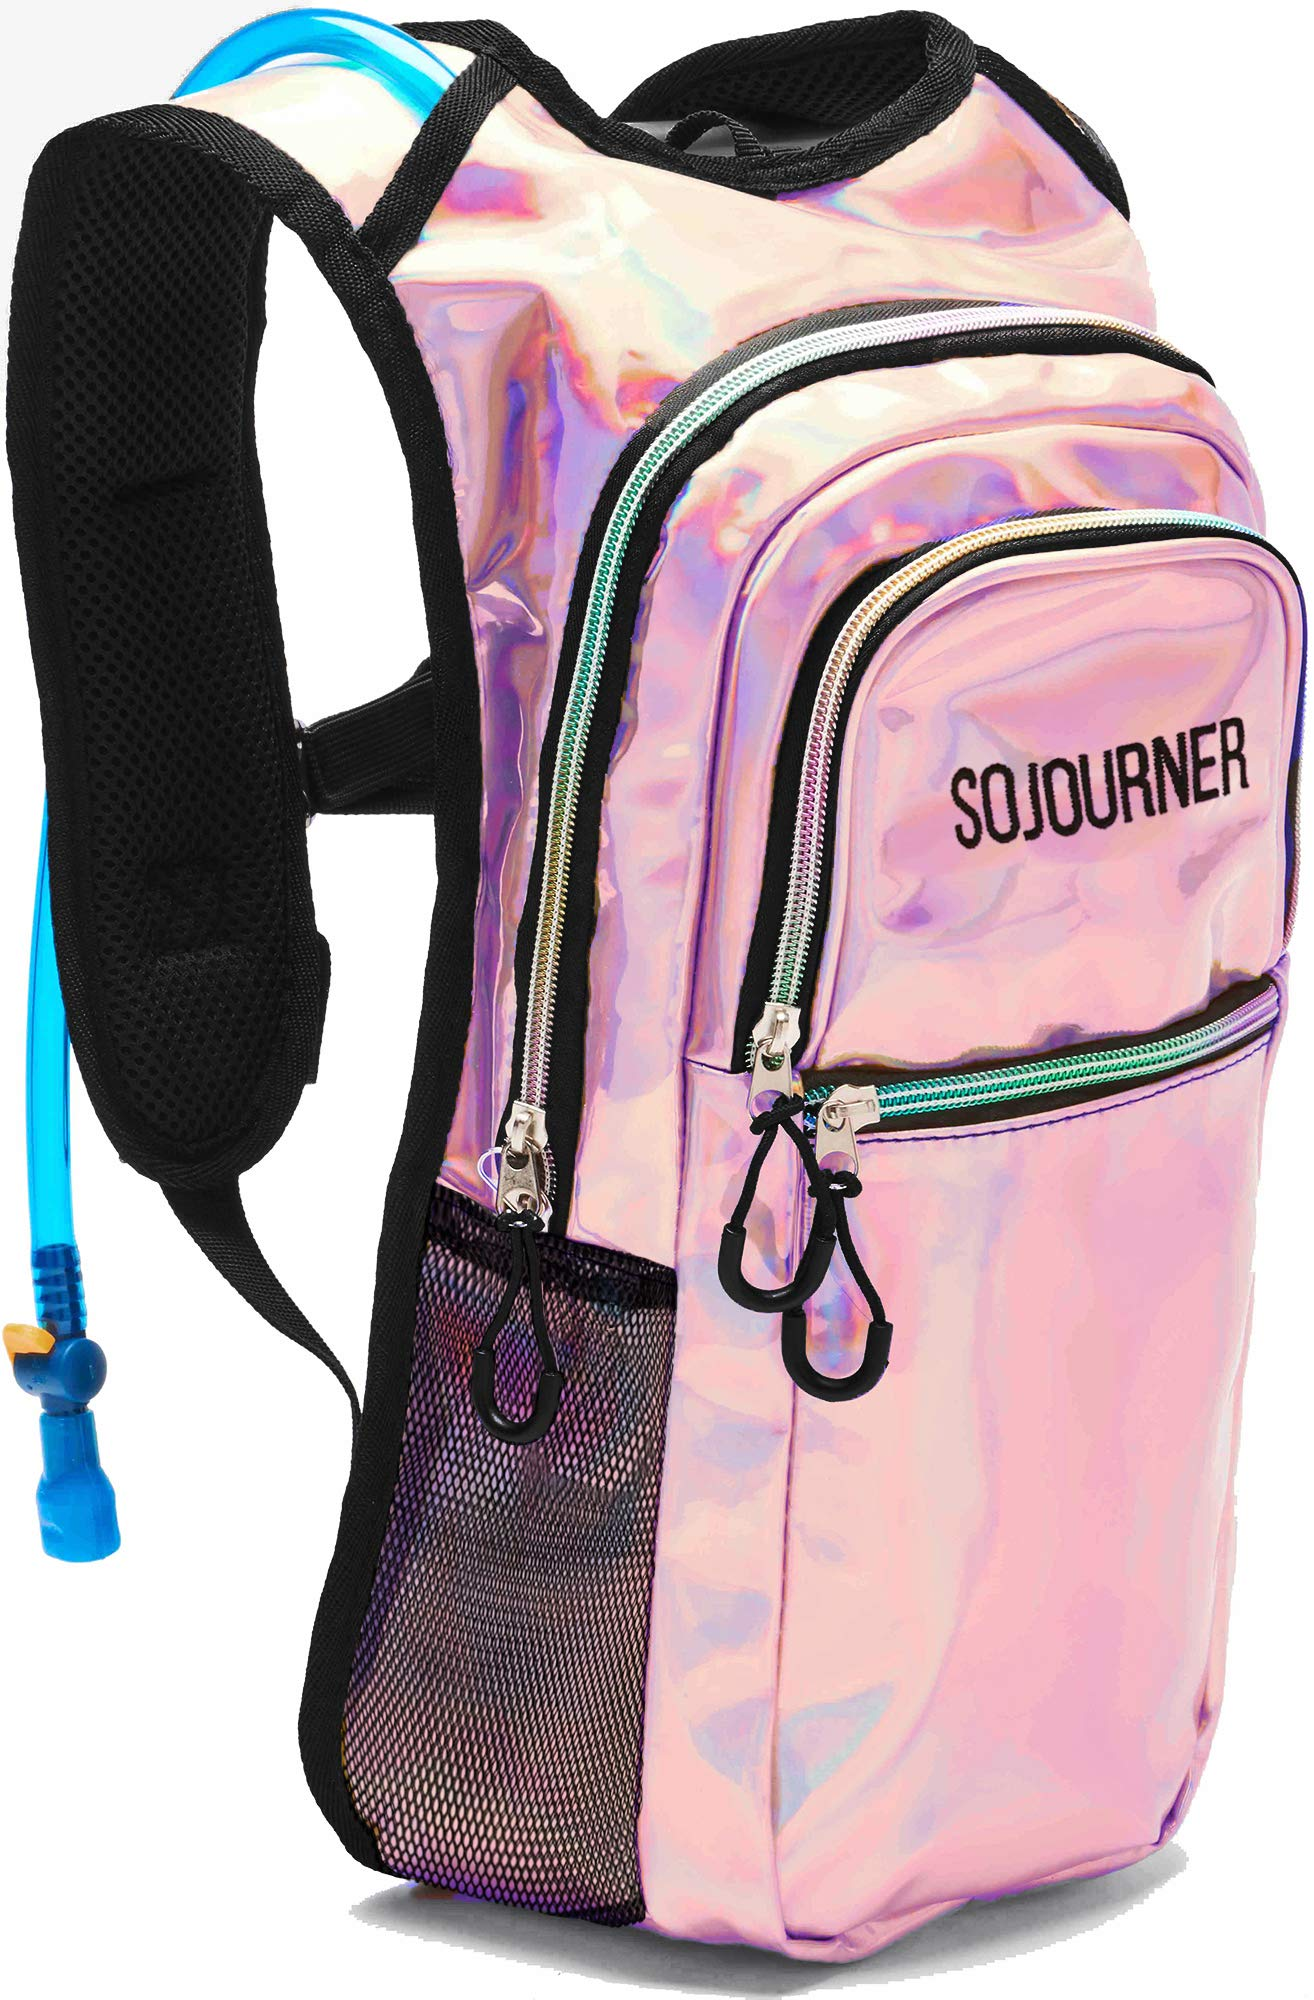 Sojourner Rave Hydration Pack Backpack - 2L Water Bladder Included for Festivals, Raves, Hiking, Biking, Climbing, Running and More (Medium) (Holographic - Pink)